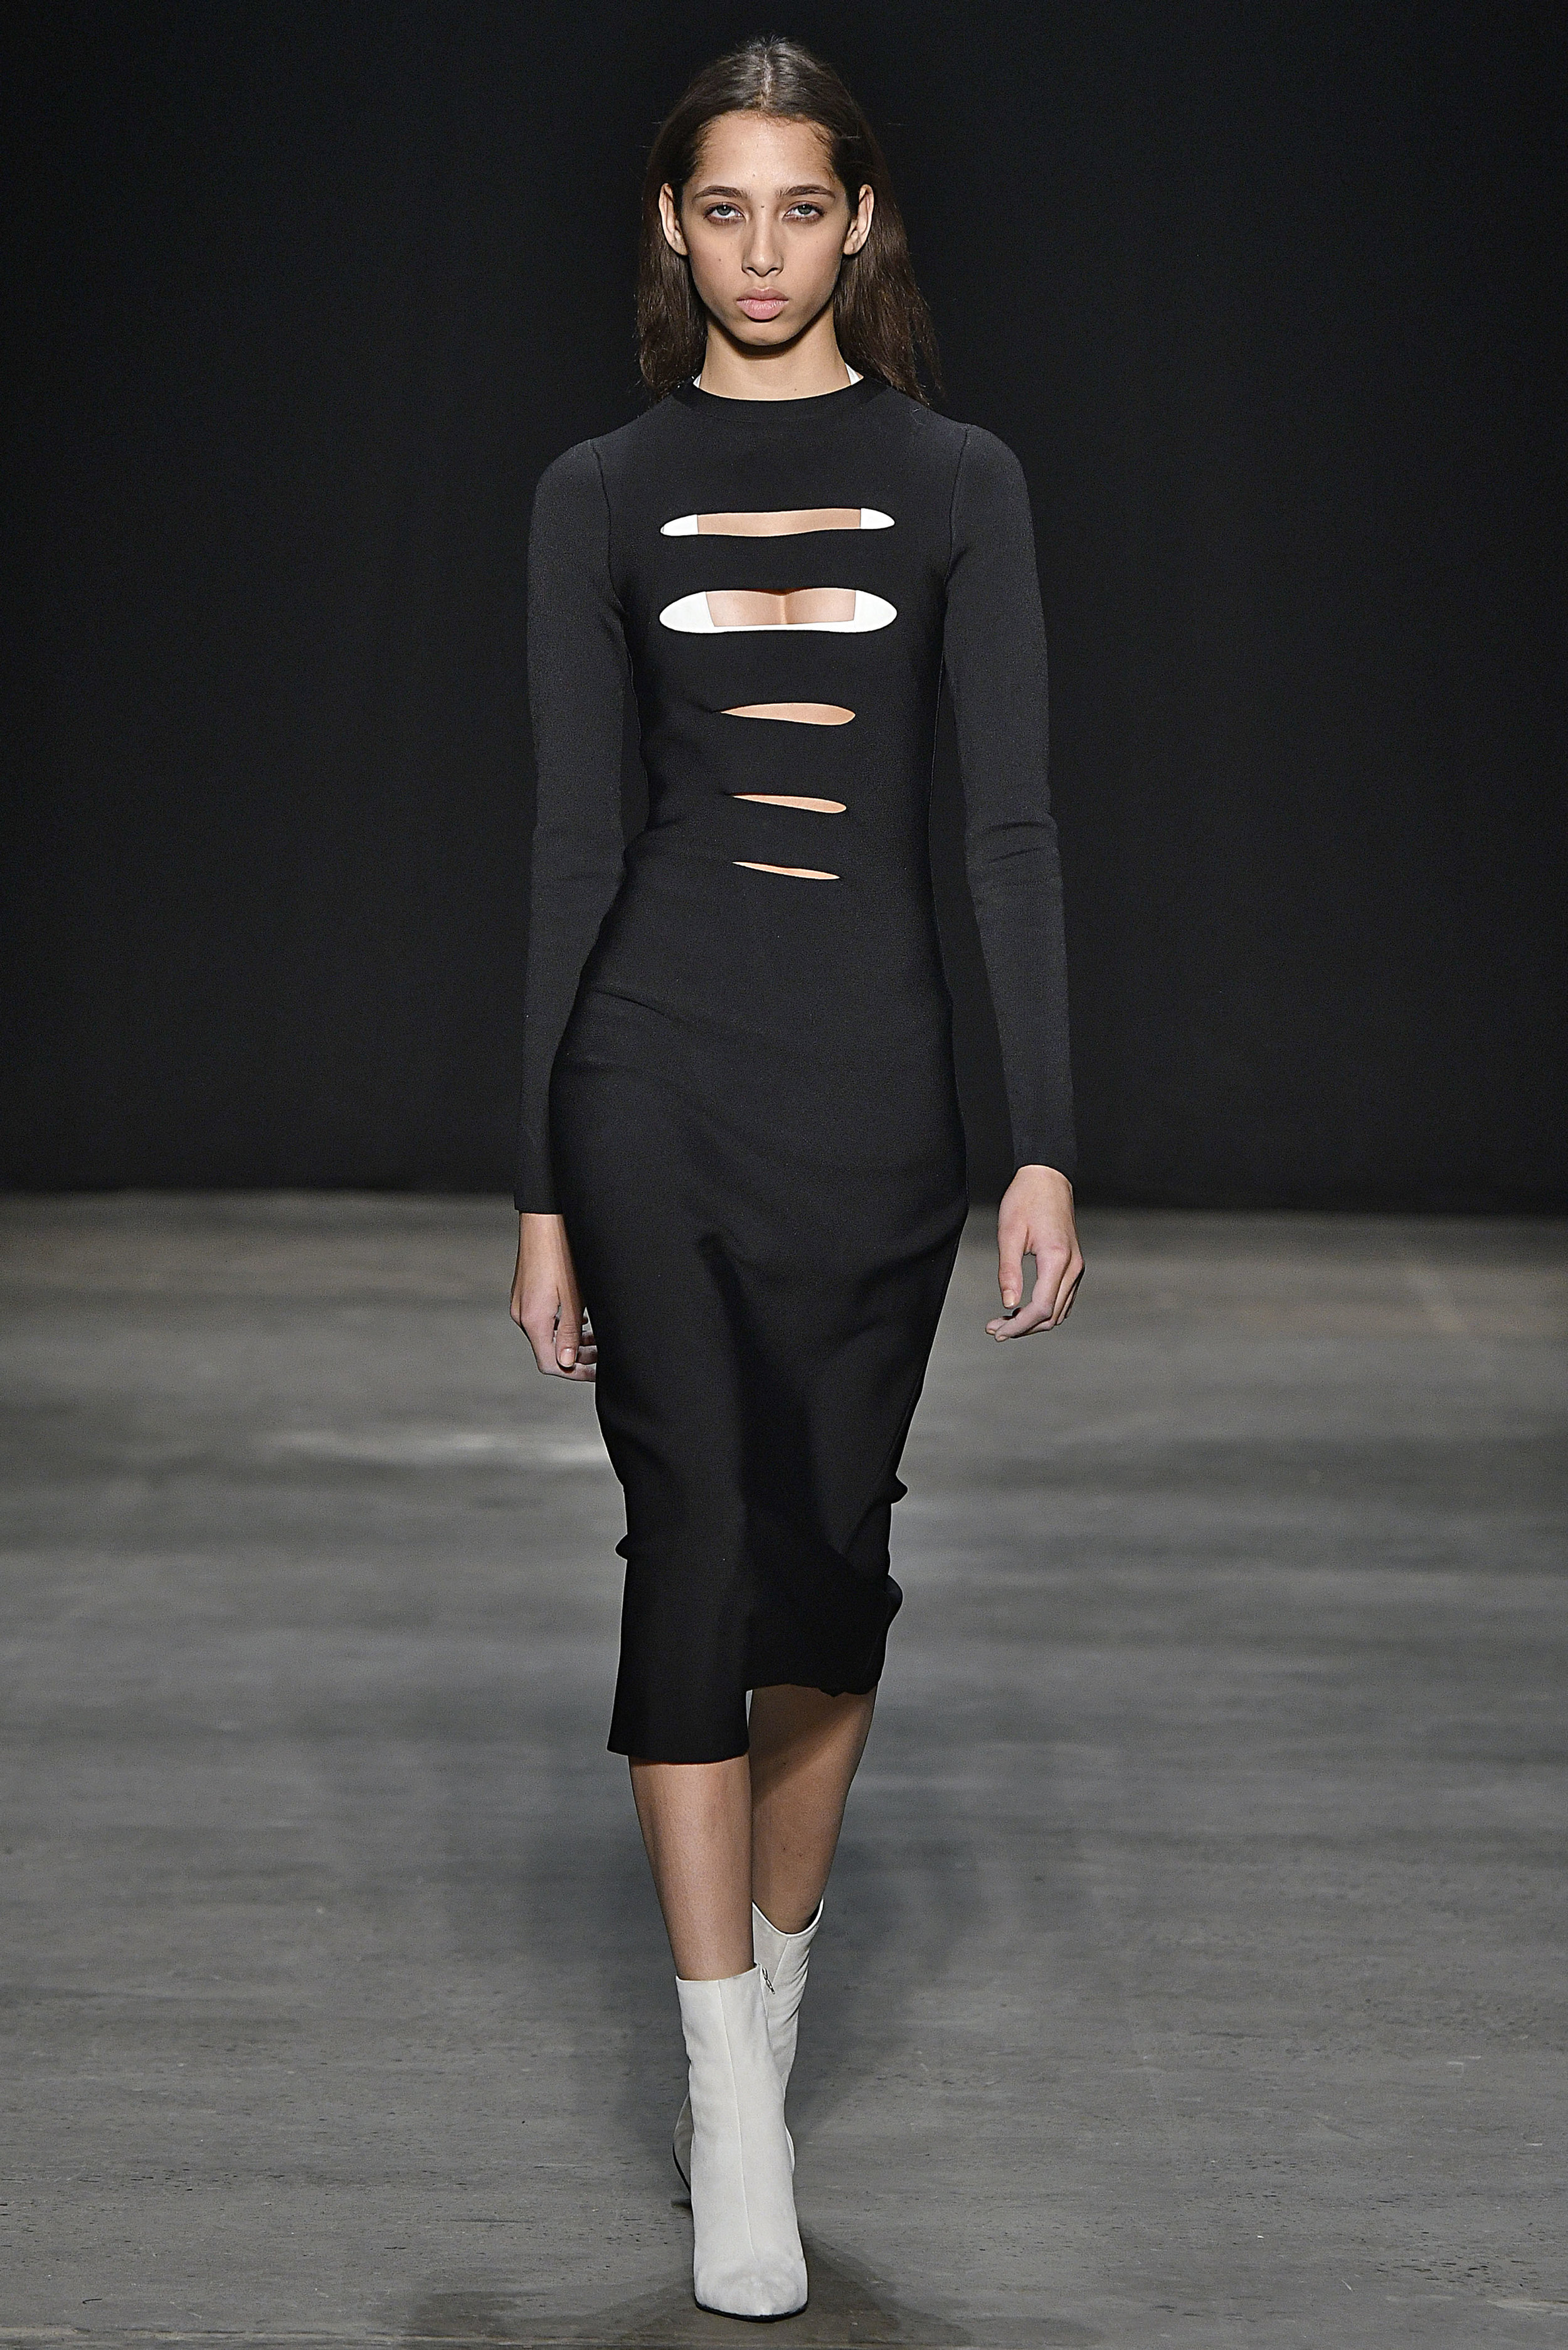 Narciso Rodriguez Fall 2017 collection. Black double knit band dress with white silk sling bra.